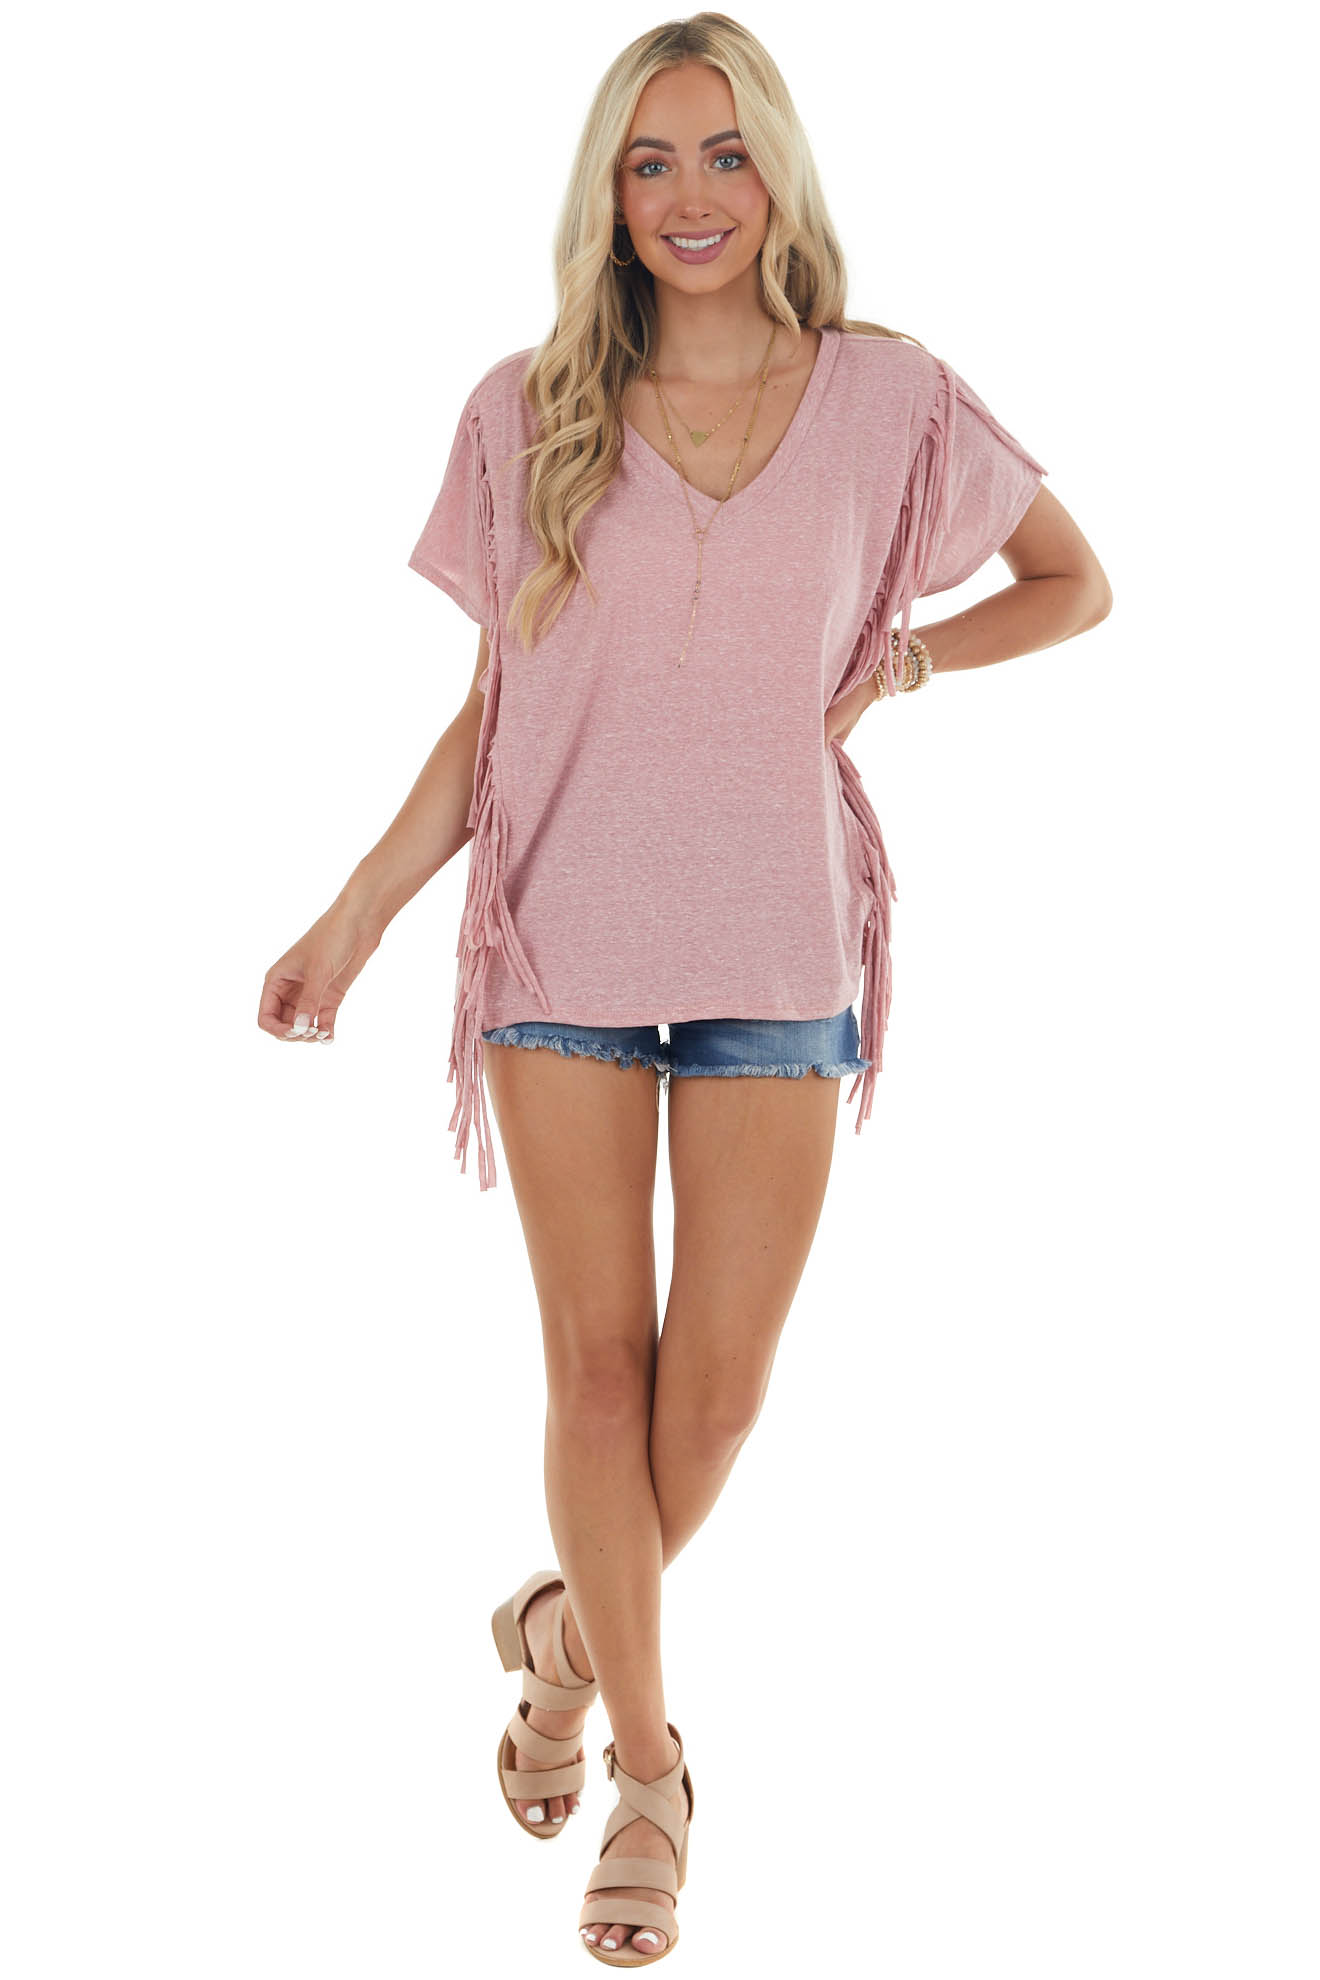 Heathered Dusty Rose Top with Fringe Details